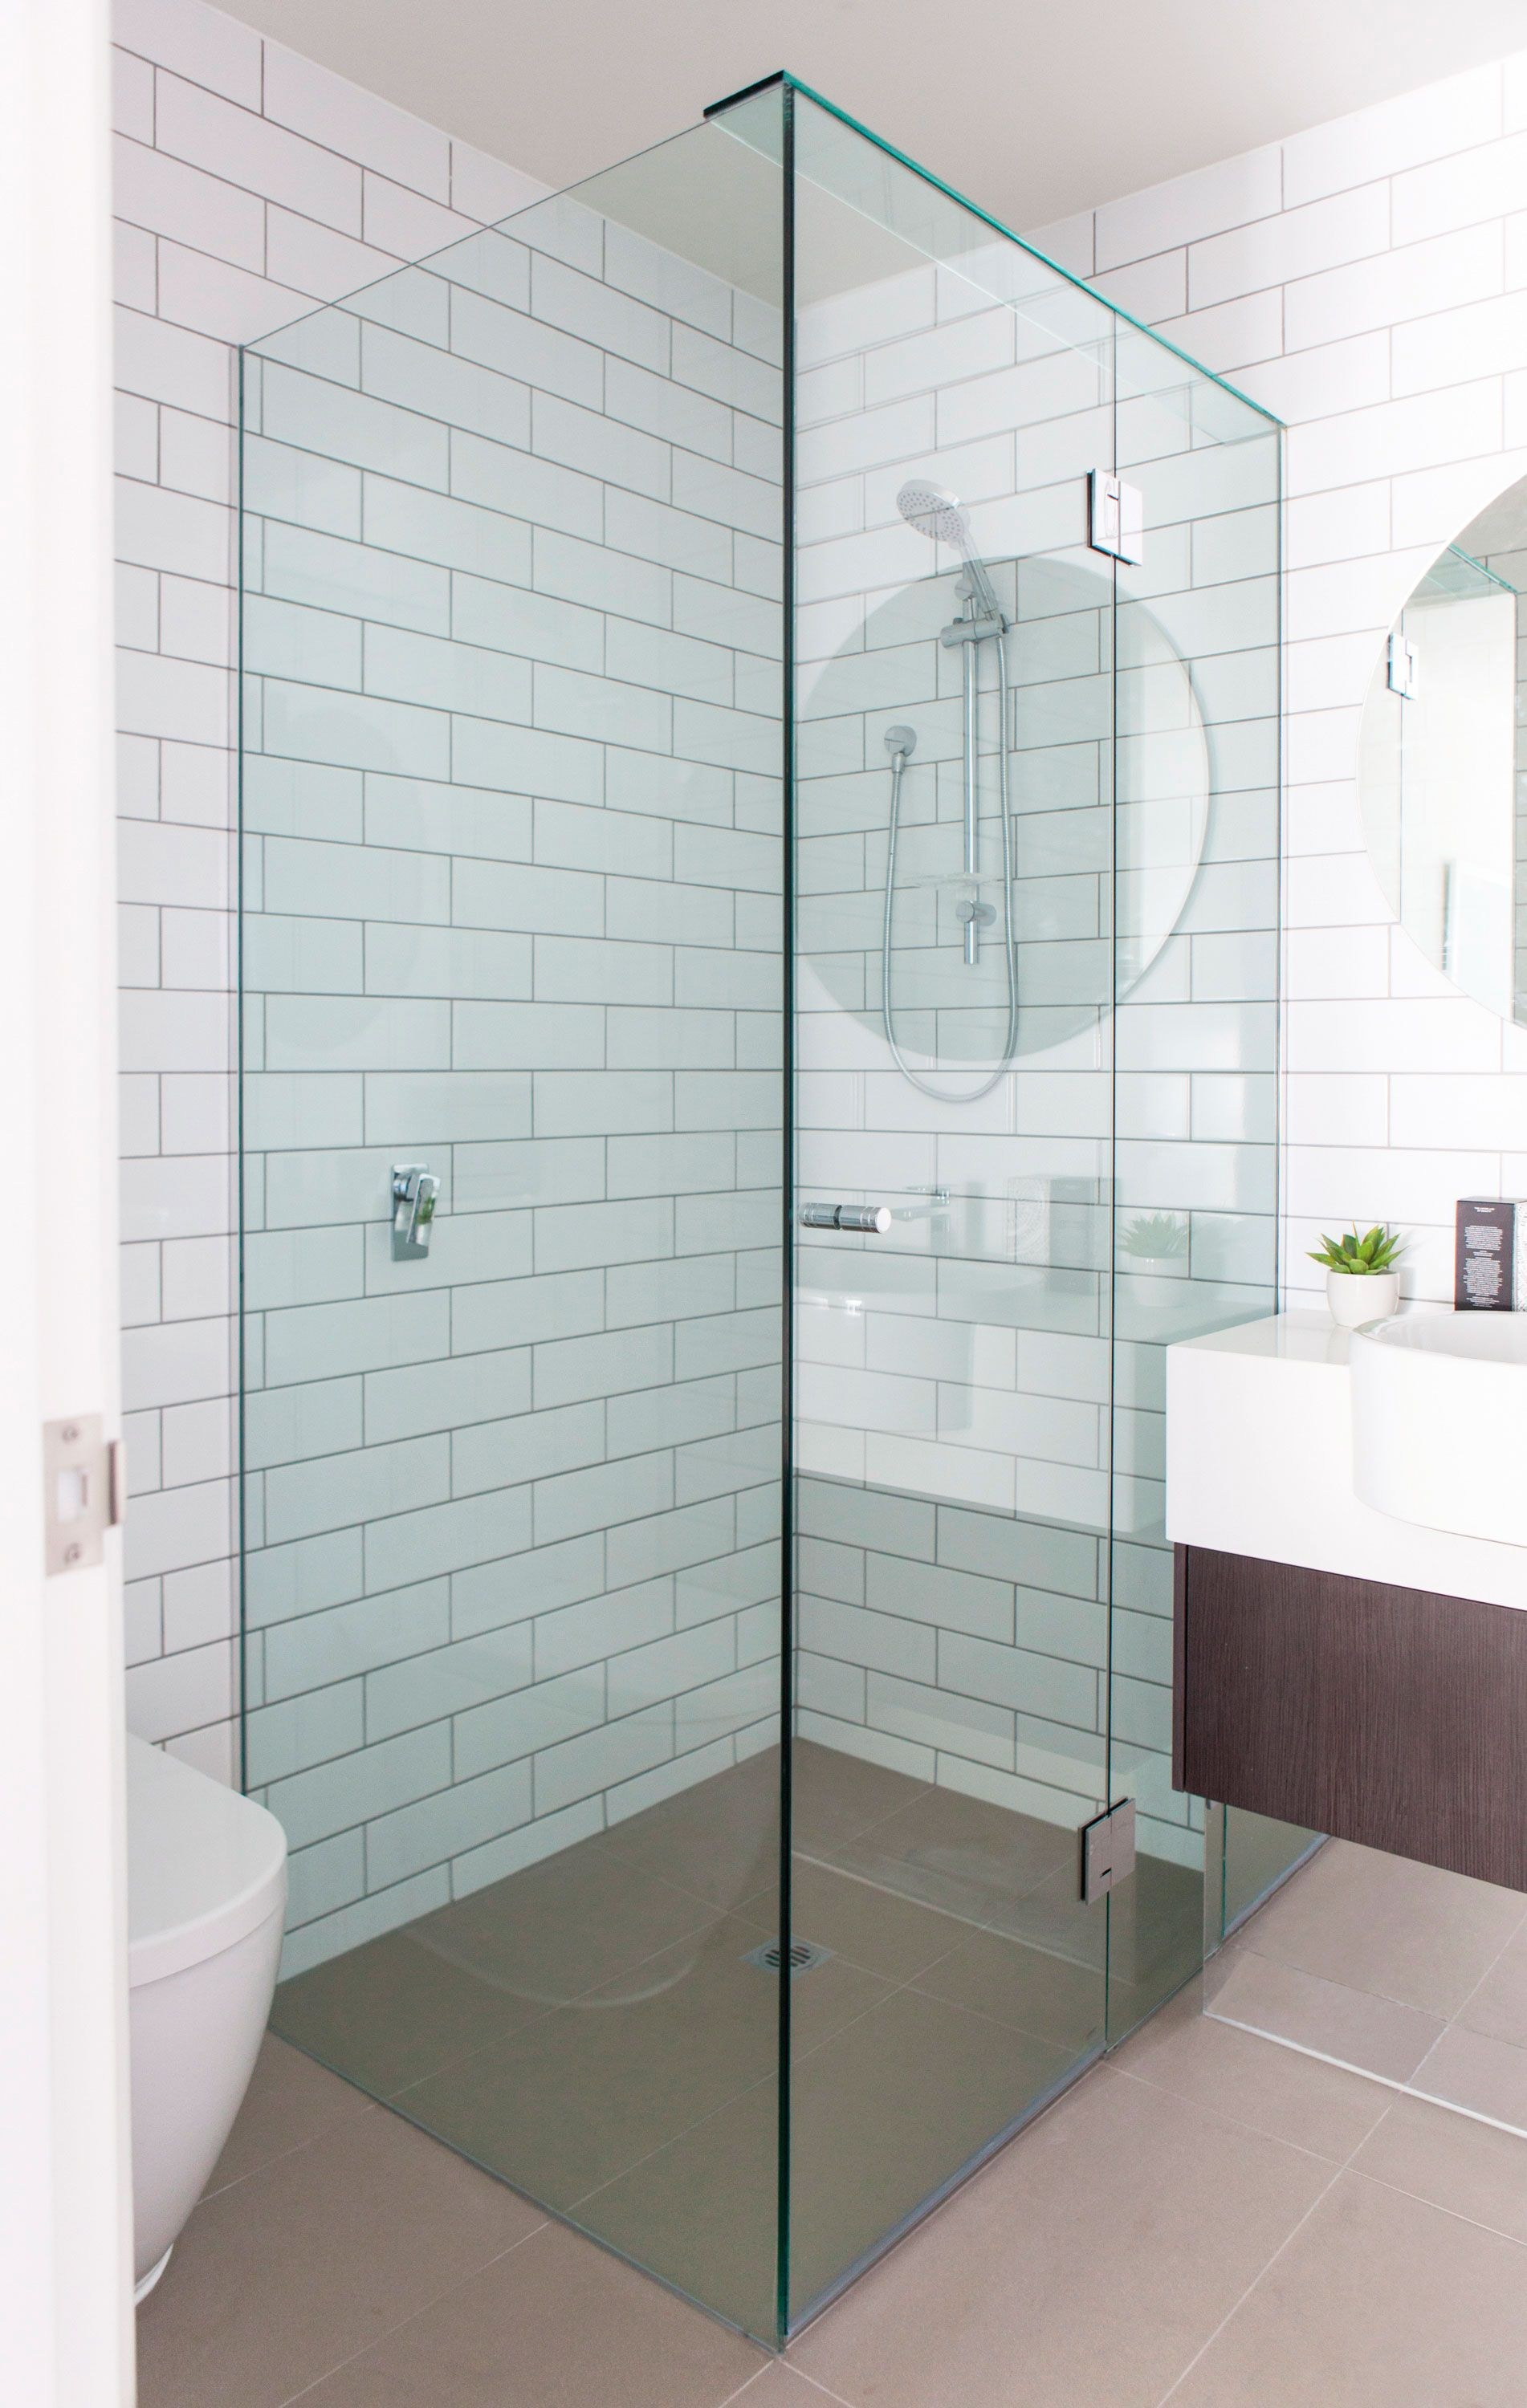 frameless shower screens - 7 | Shower screens | Pinterest | Shower ...